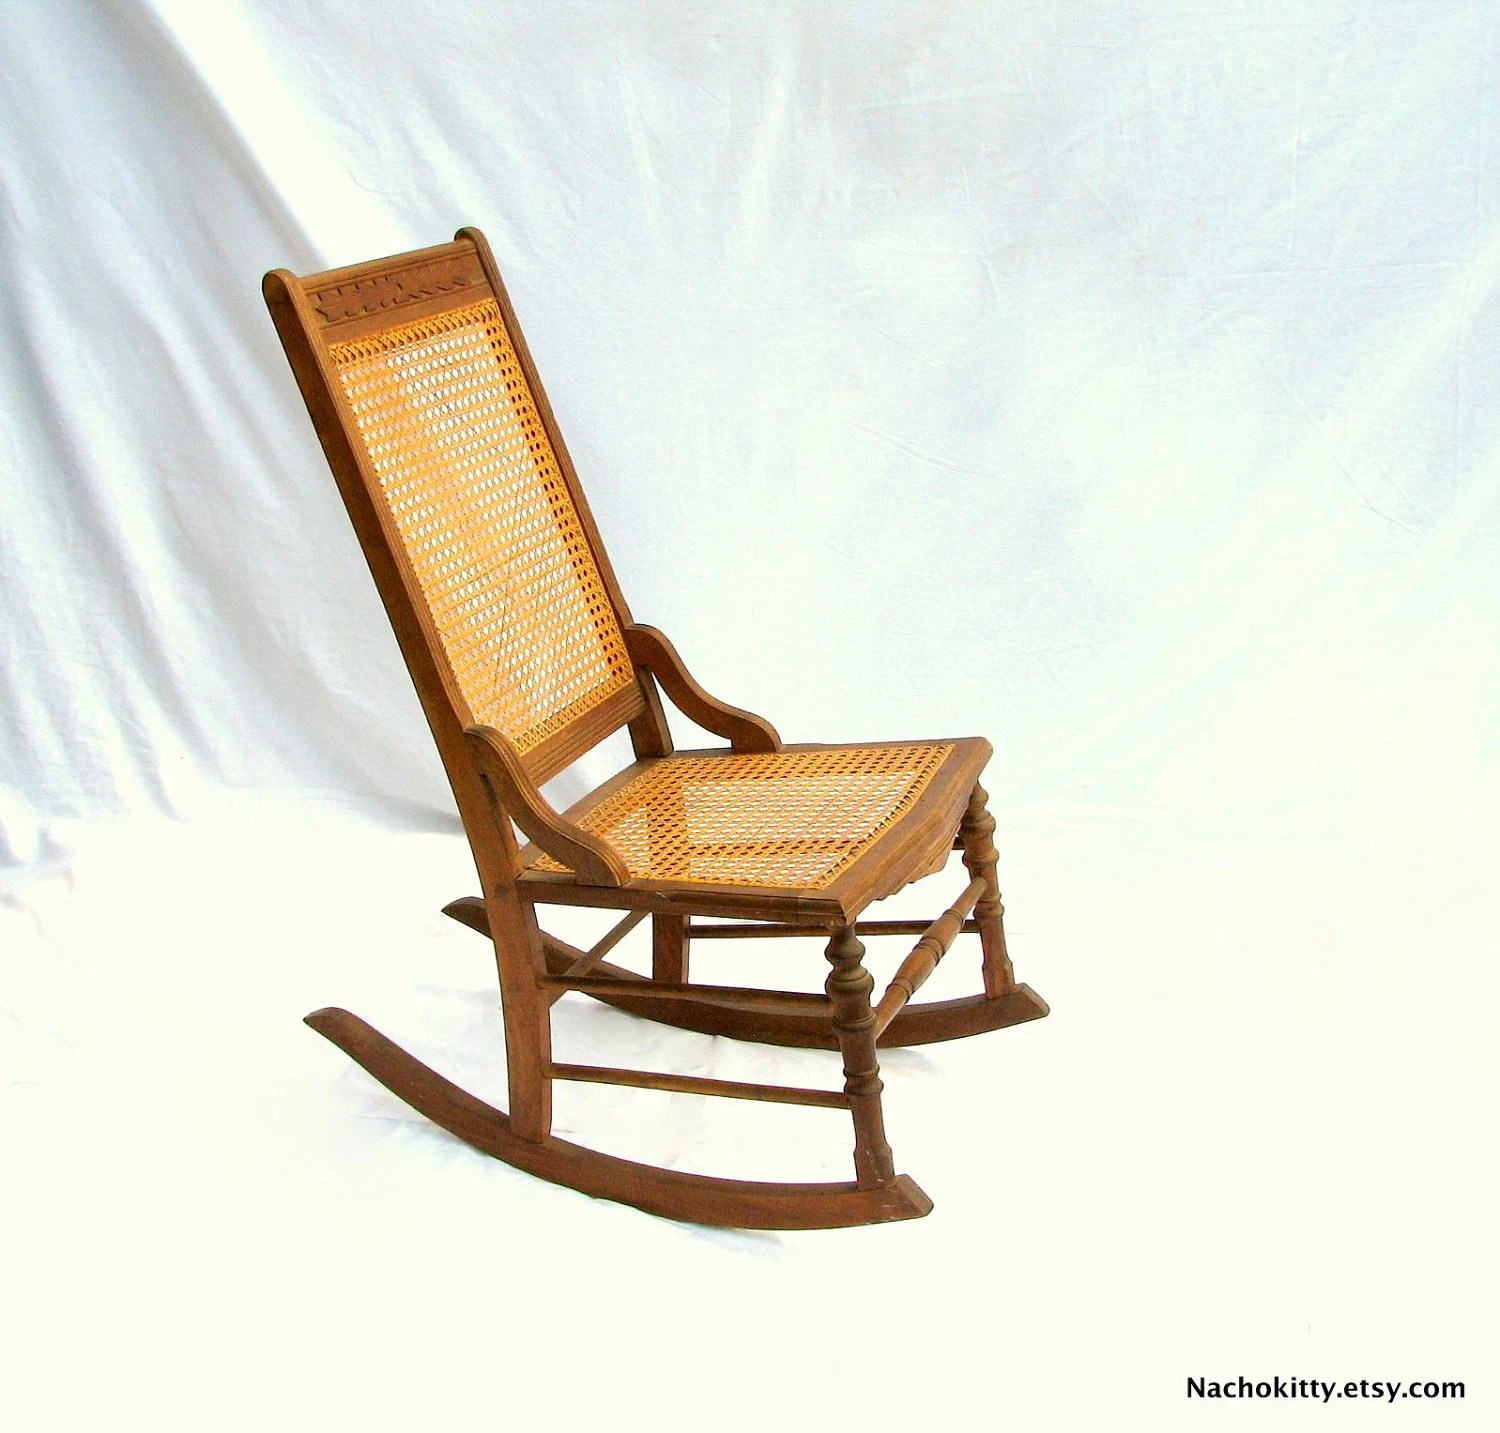 rocking chair cane tranquil ease lift model 7051 3 caned antique hand carved hardwood by nachokitty